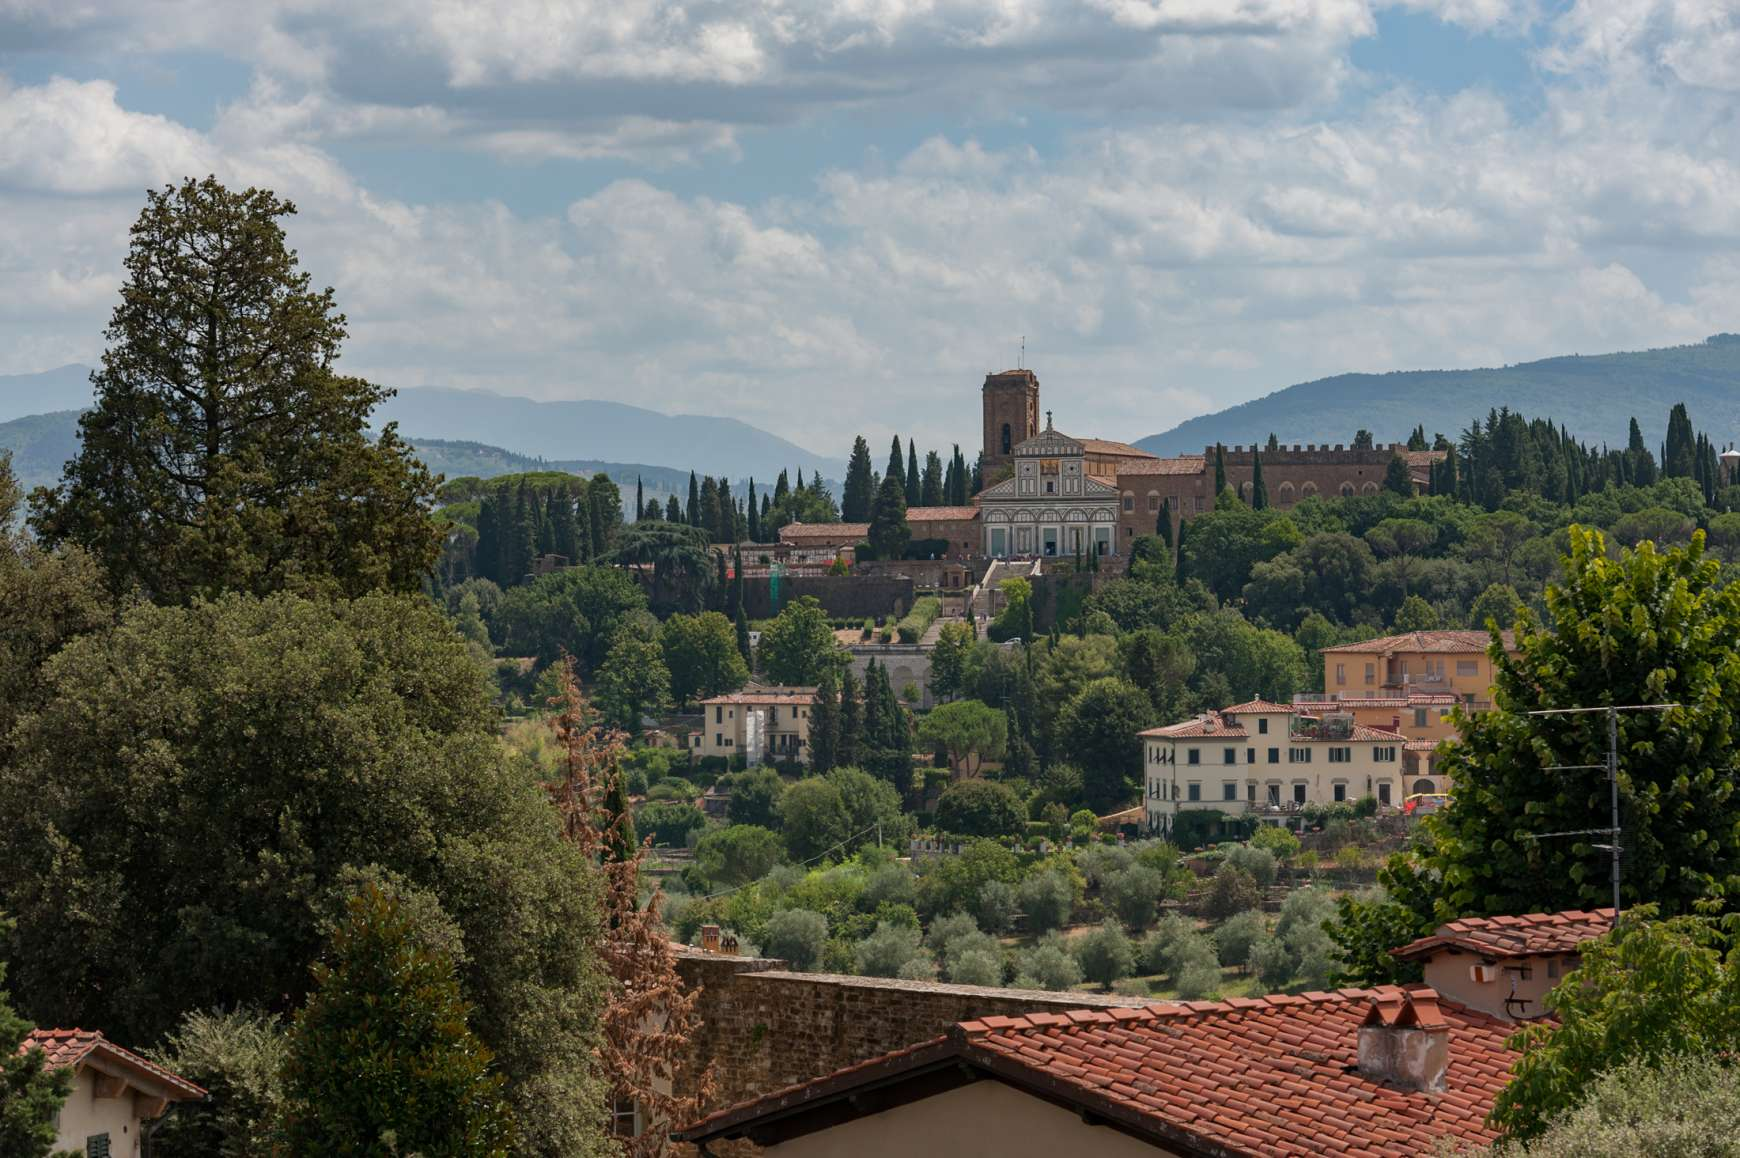 Distance view of Florence from terrace of Forte di Belvedere